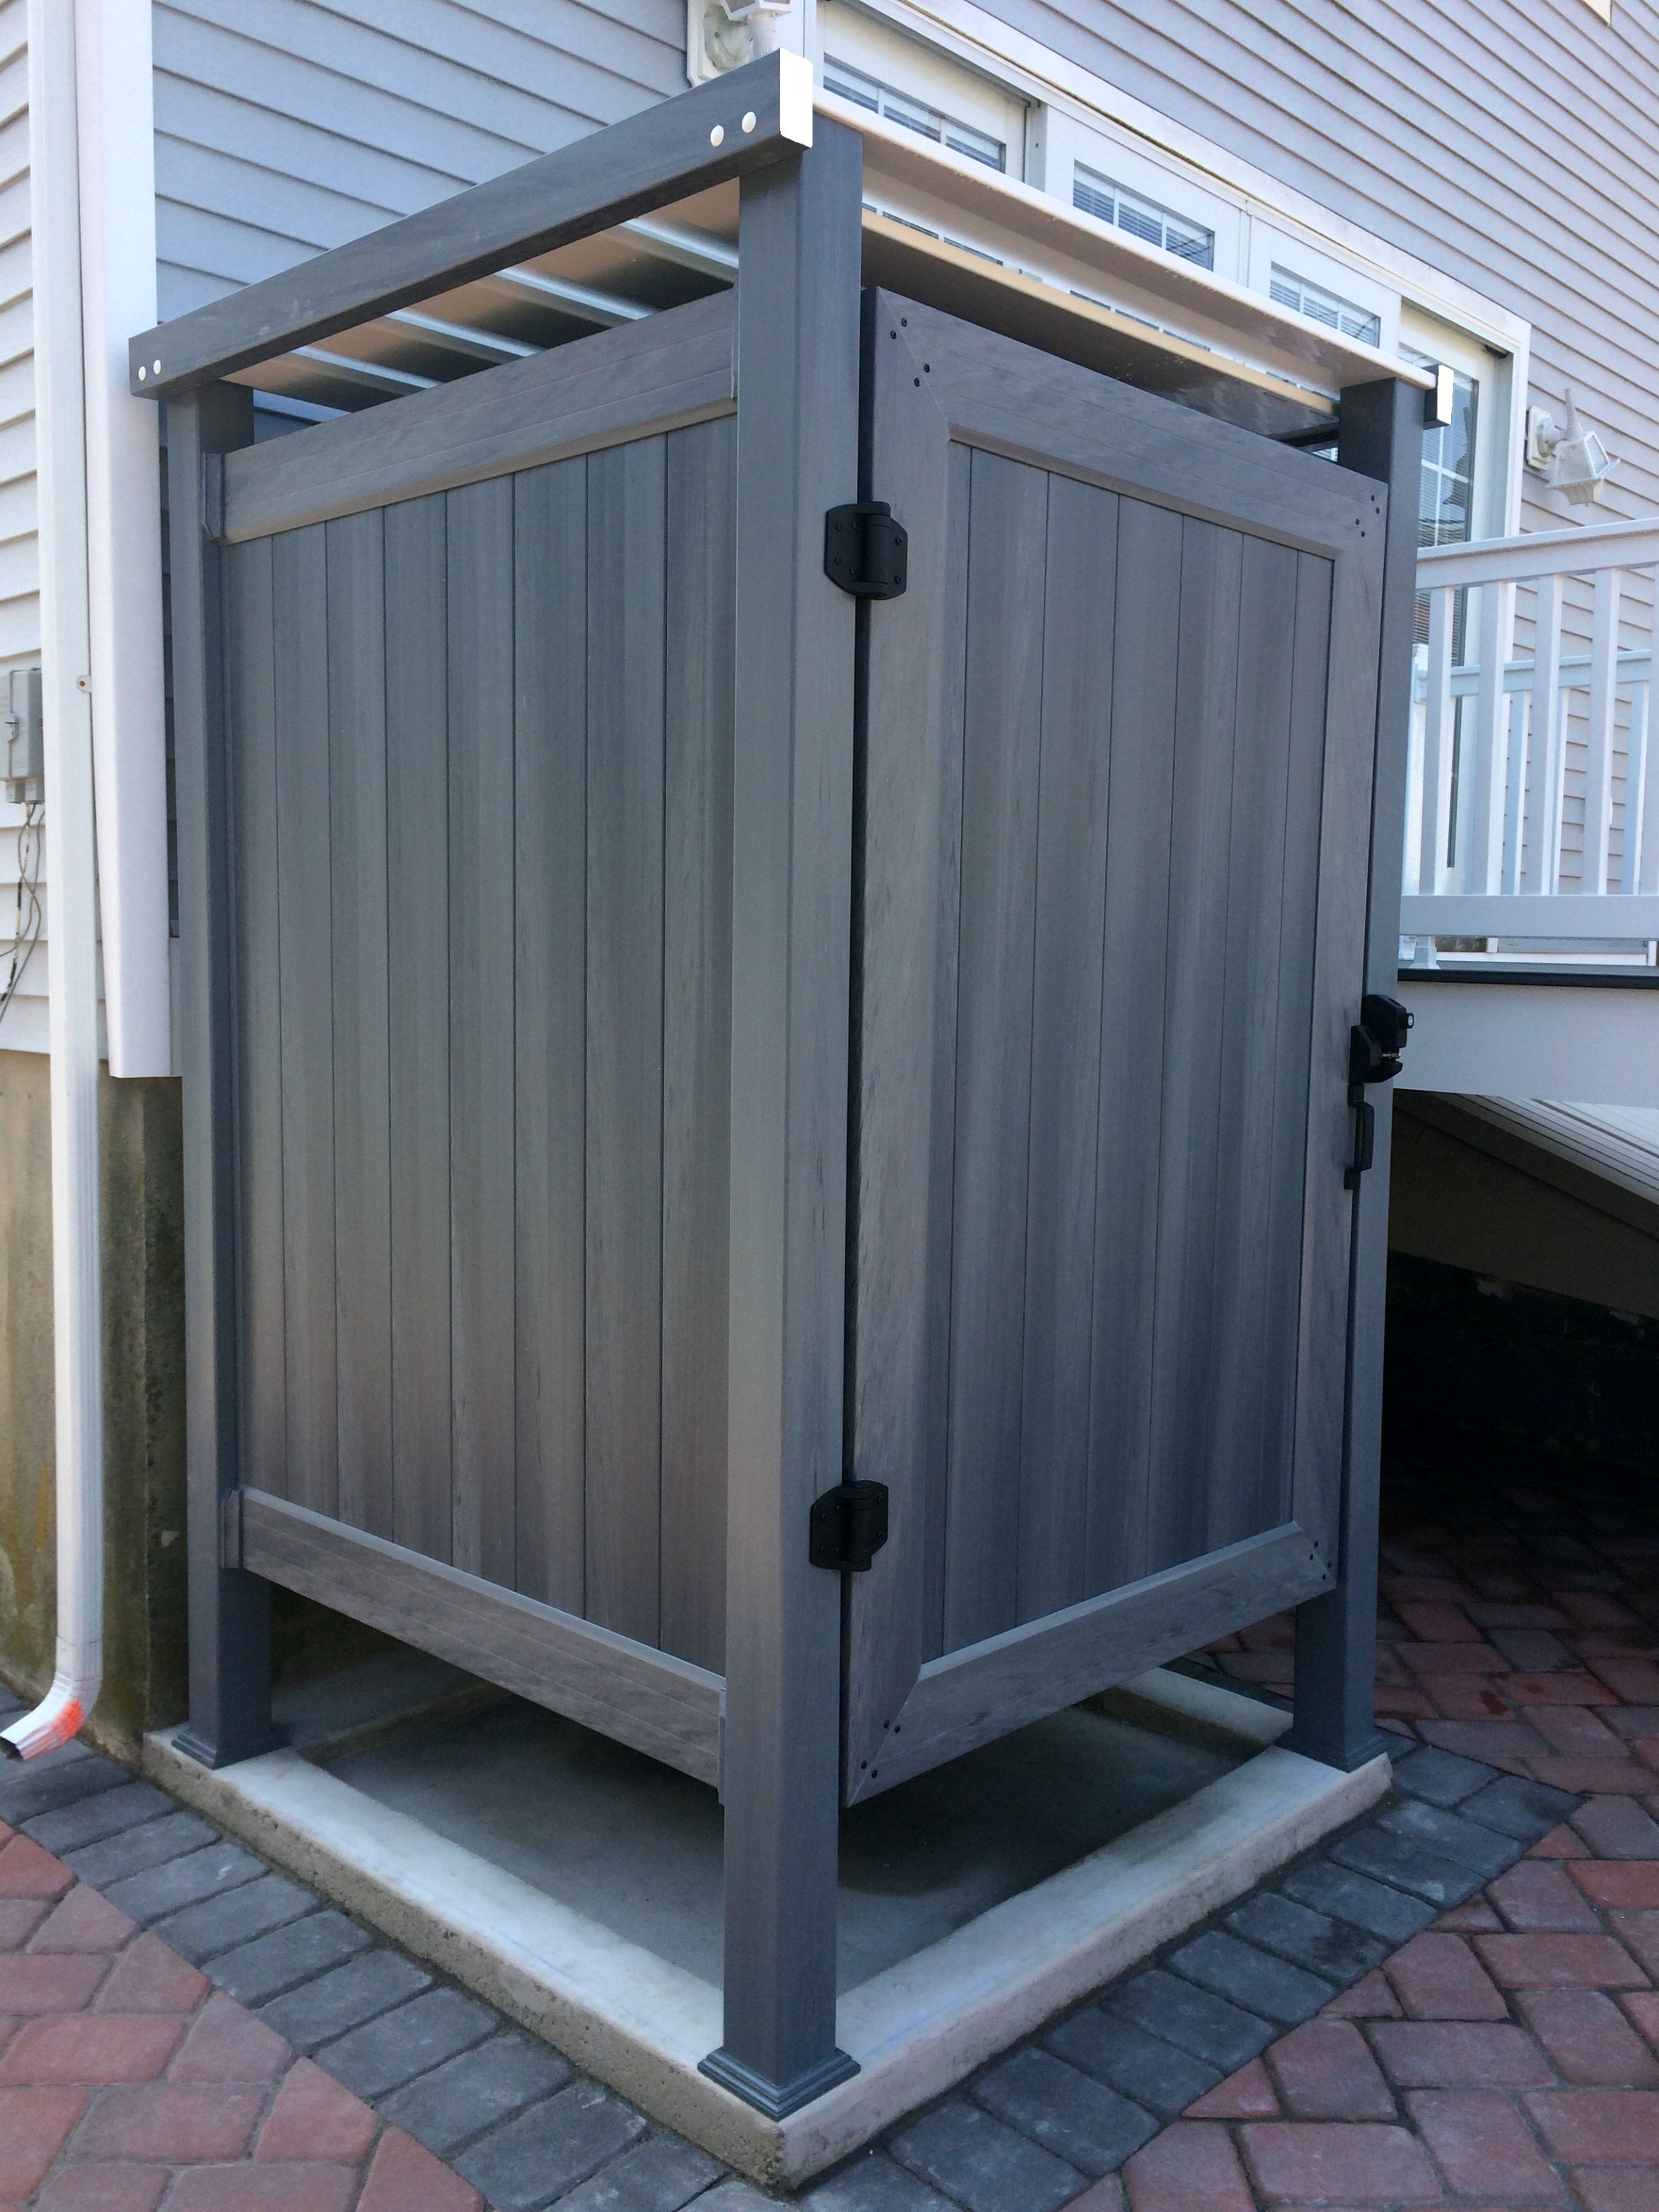 Pvc Outdoor Shower Enclosures Phoenix Manufacturing Outdoor Shower Enclosure Outdoor Bathroom Design Outdoor Bathrooms